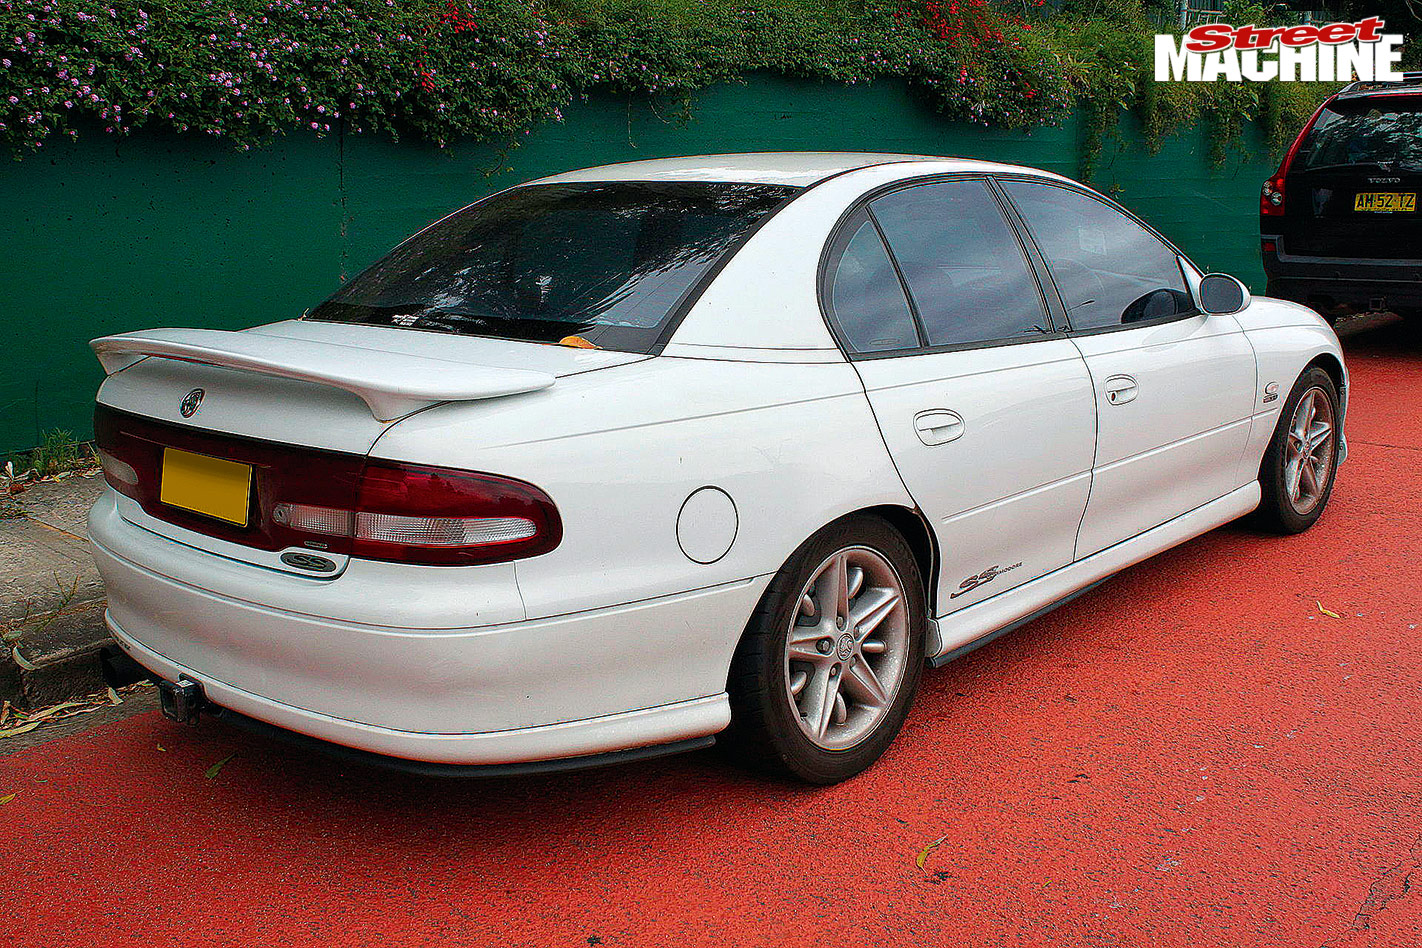 1999_Holden _Commodore _(VT_II)_SS_sedan